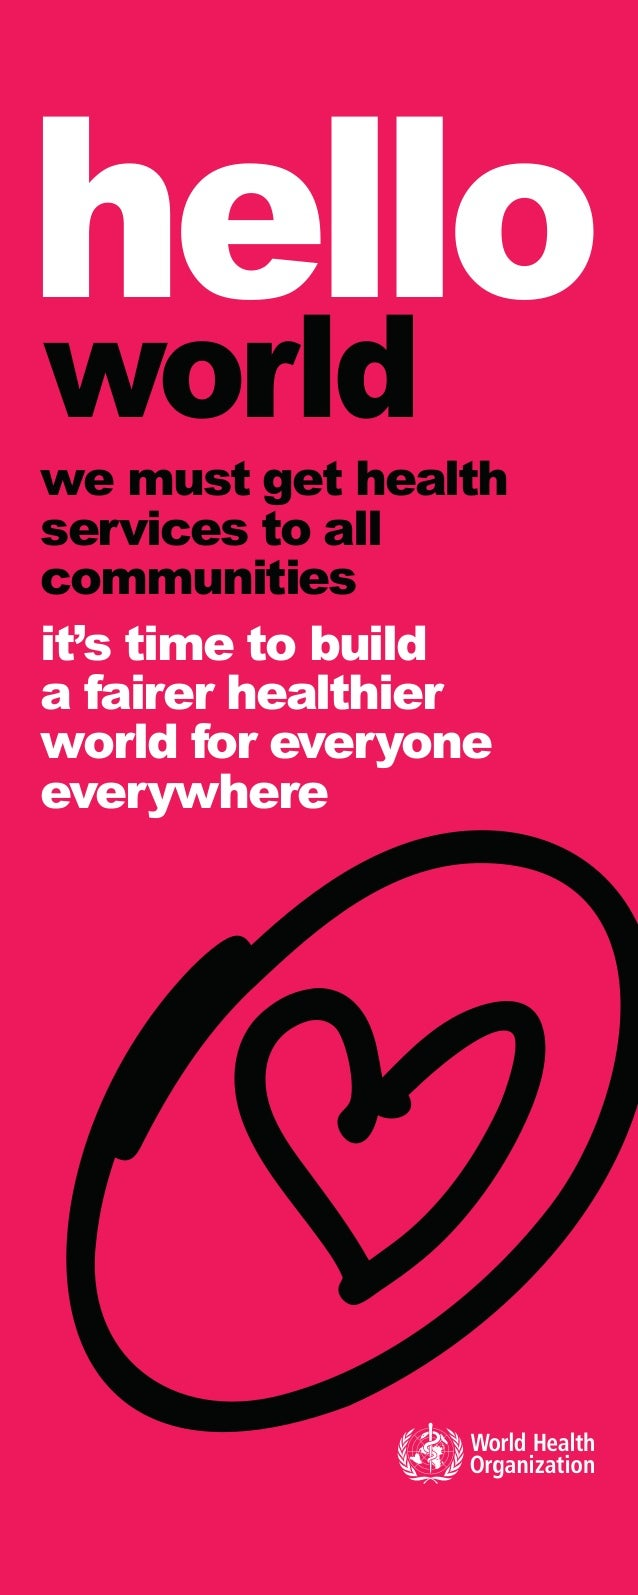 hello world we must get health services to all communities it's time to build a fairer healthier world for everyone everyw...